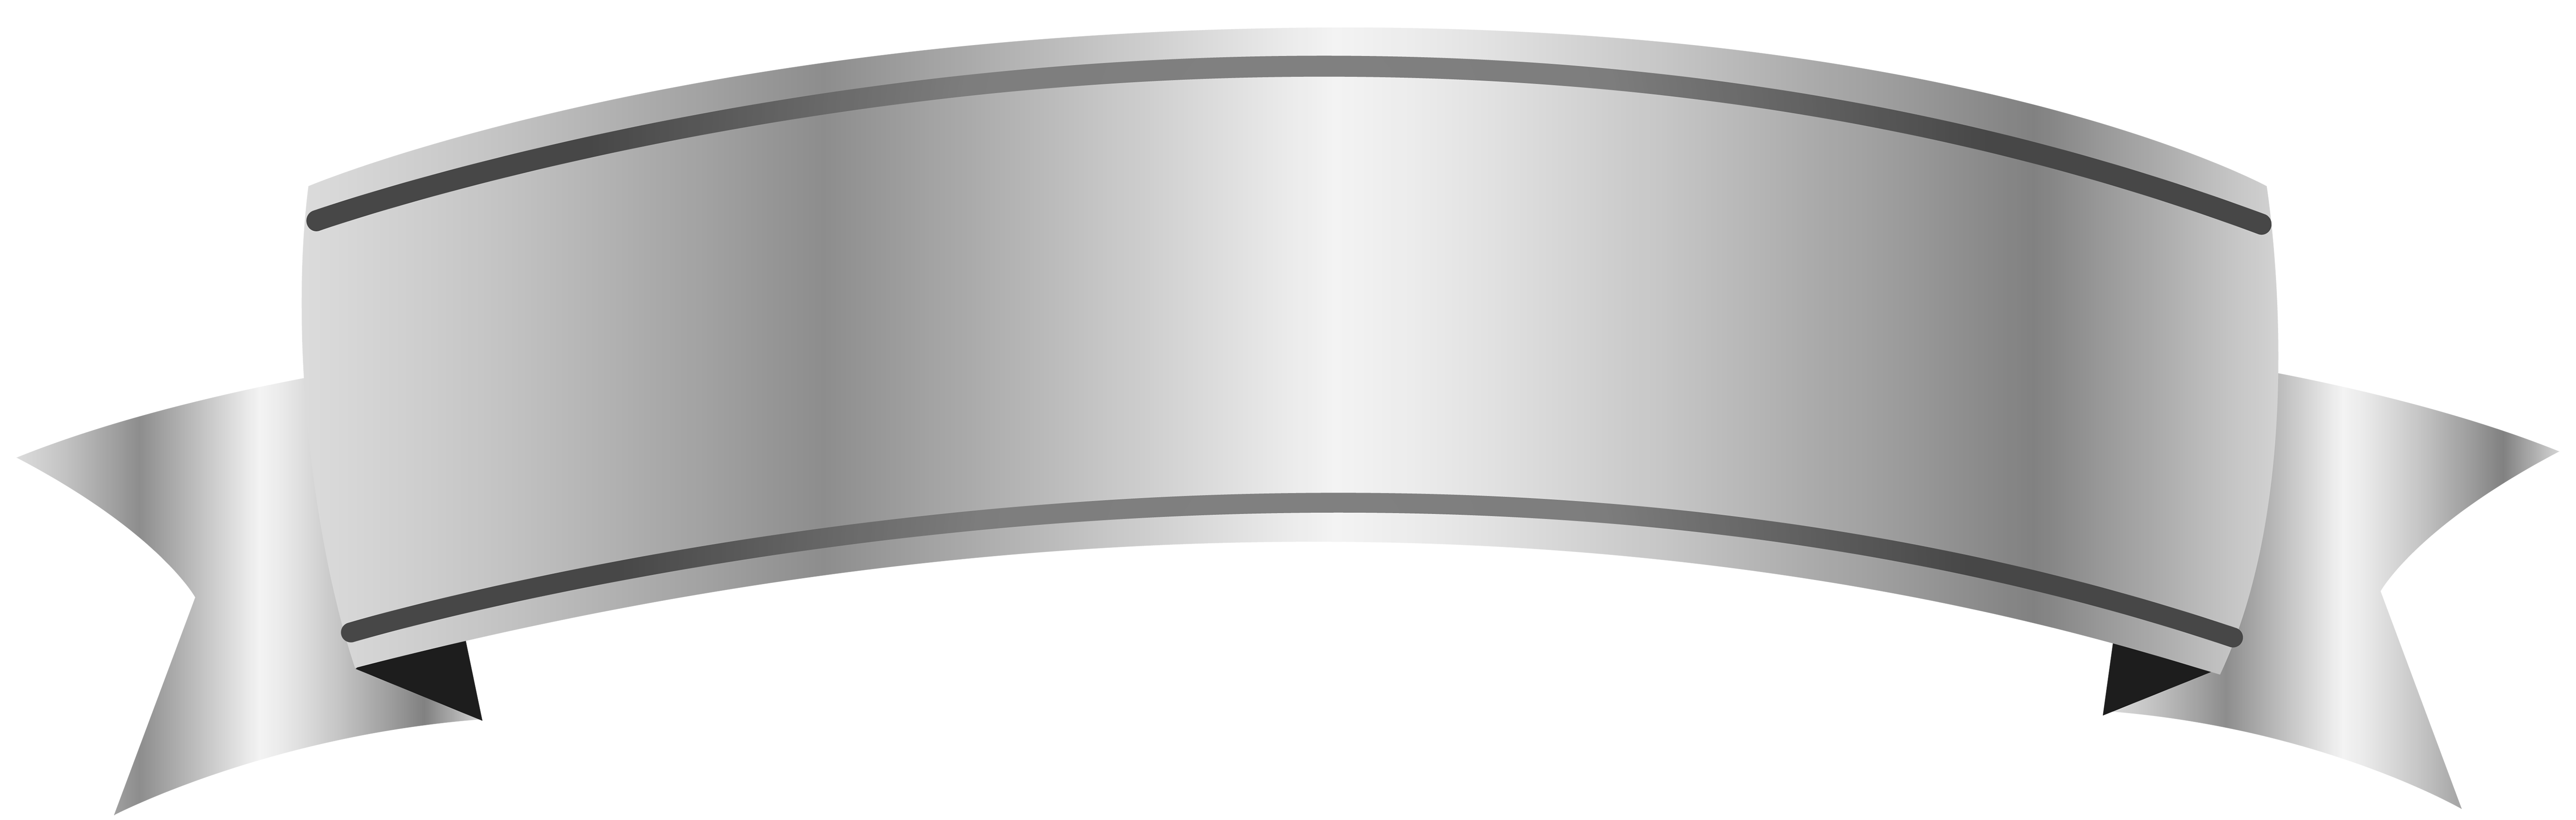 Silver Banner PNG Image.